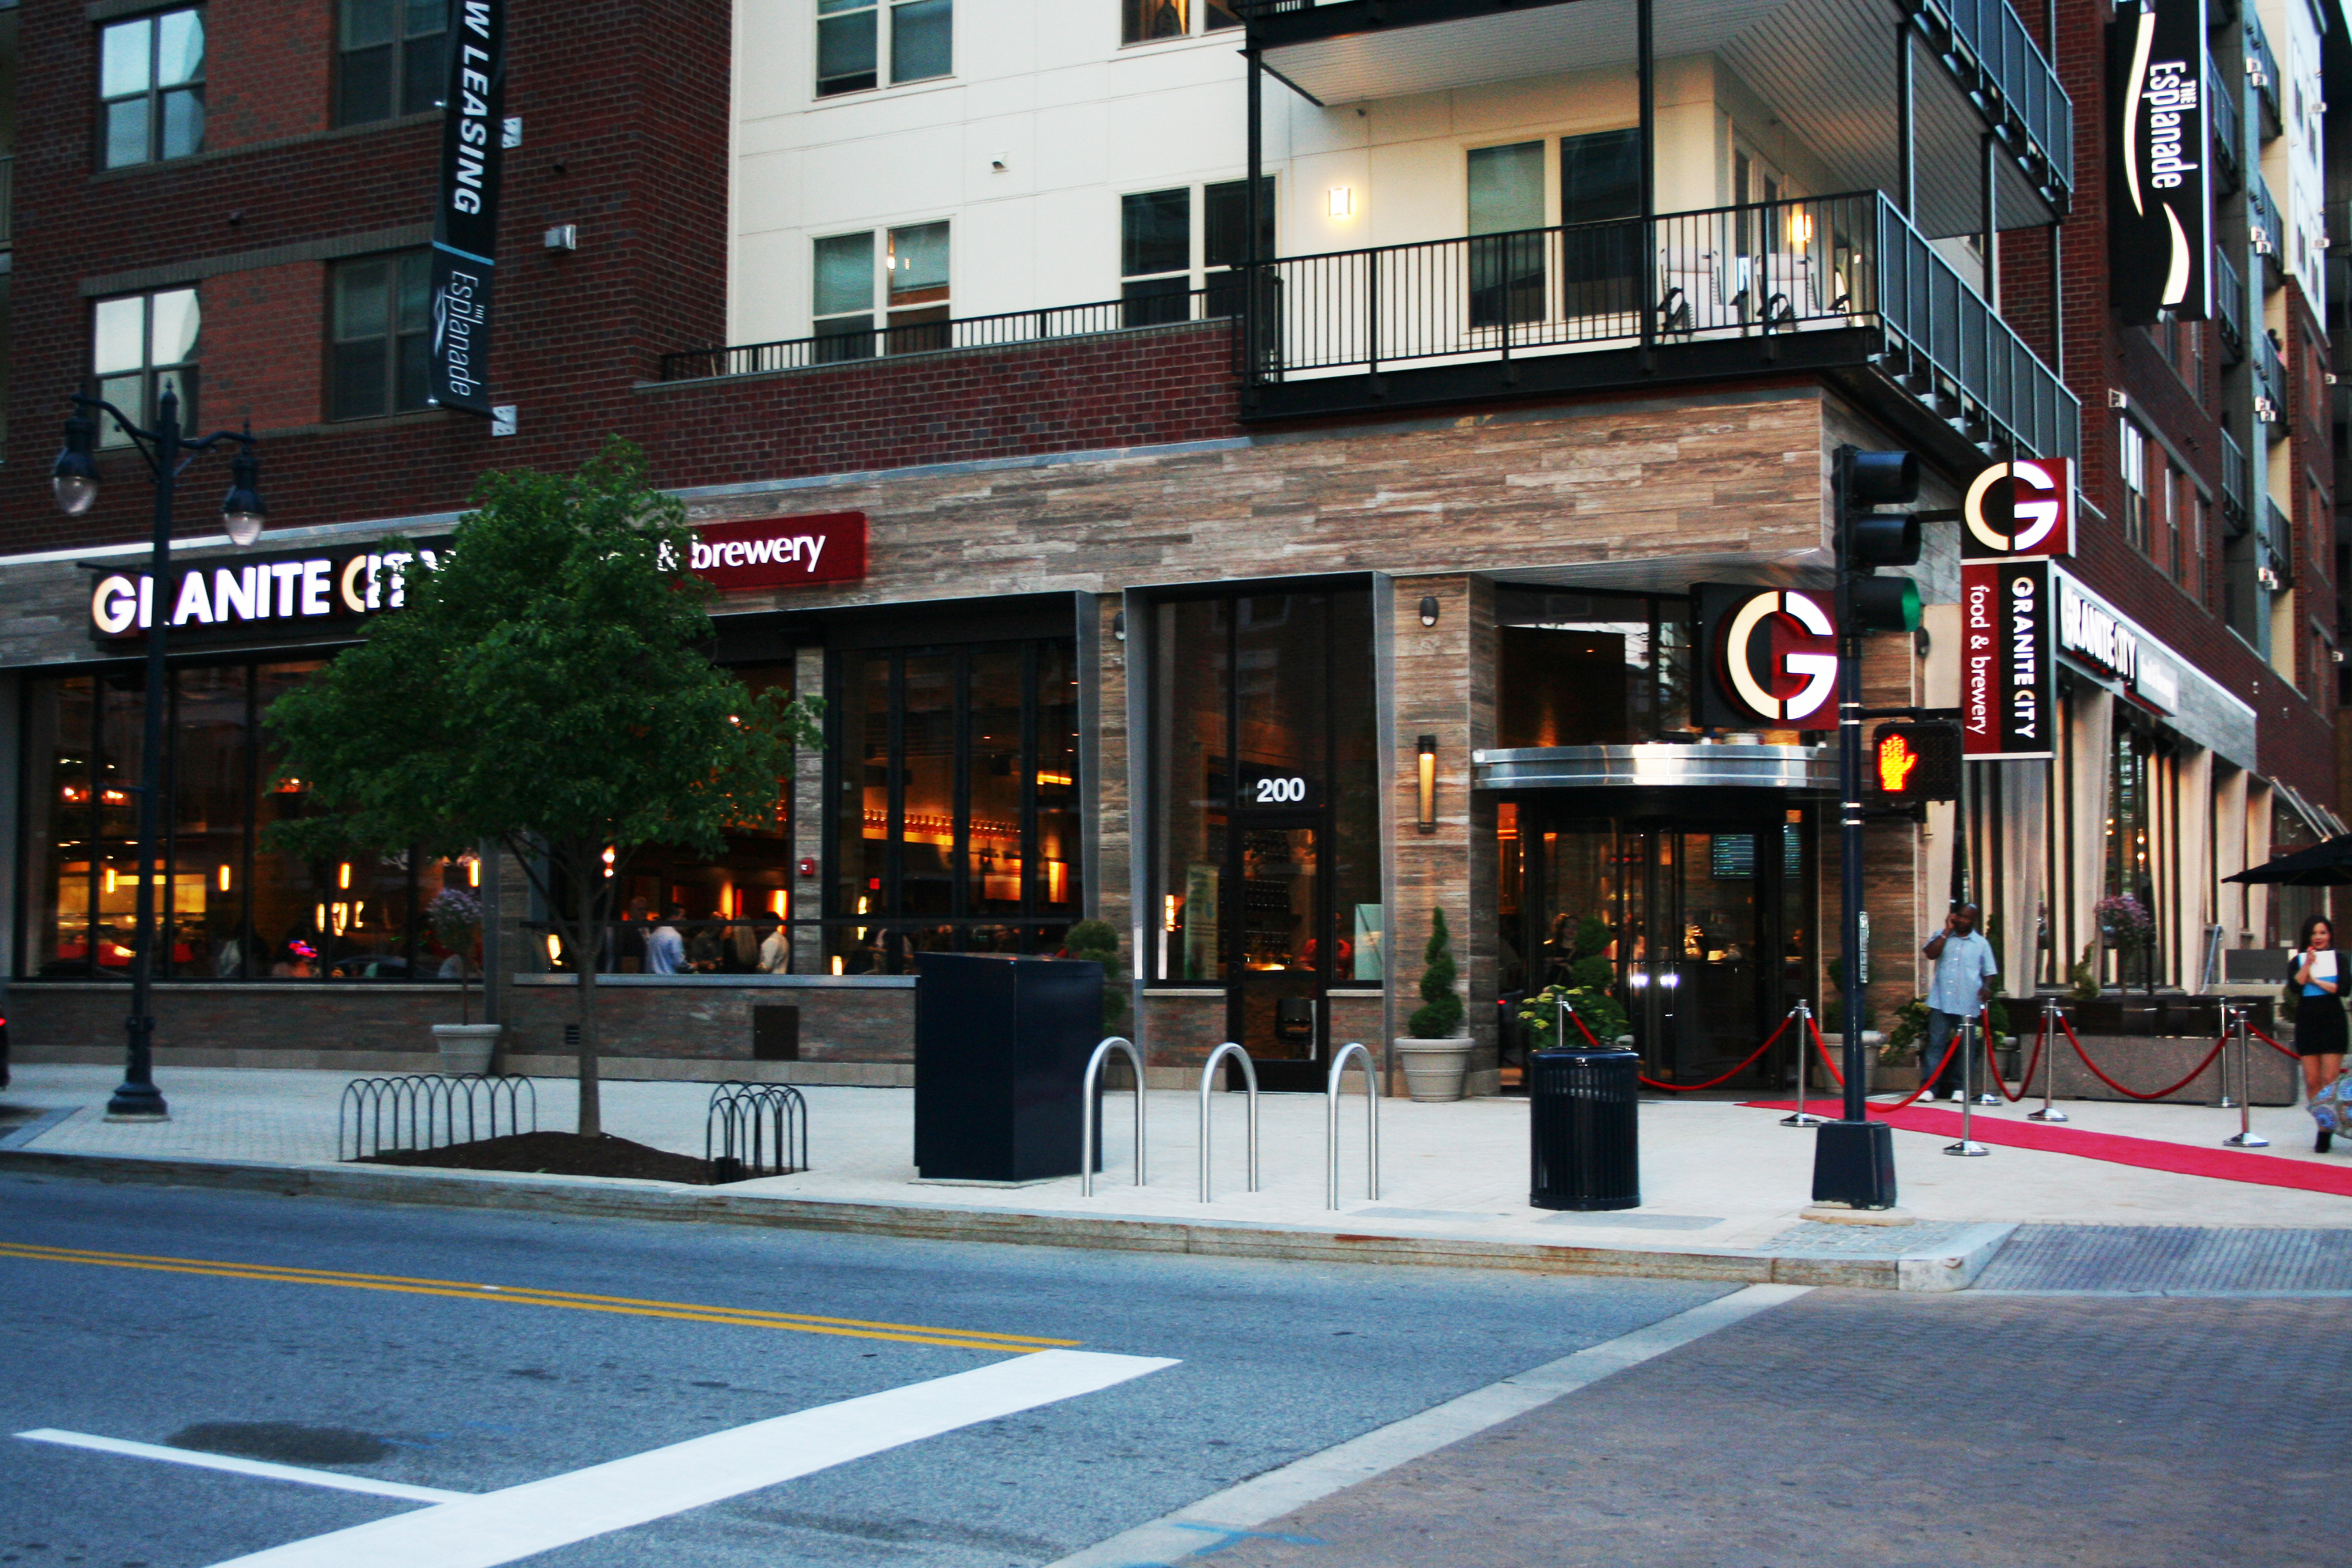 Granite City Food & Brewery opens today in National Harbor. (Photo: Mark Heckathorn/DC on Heels)